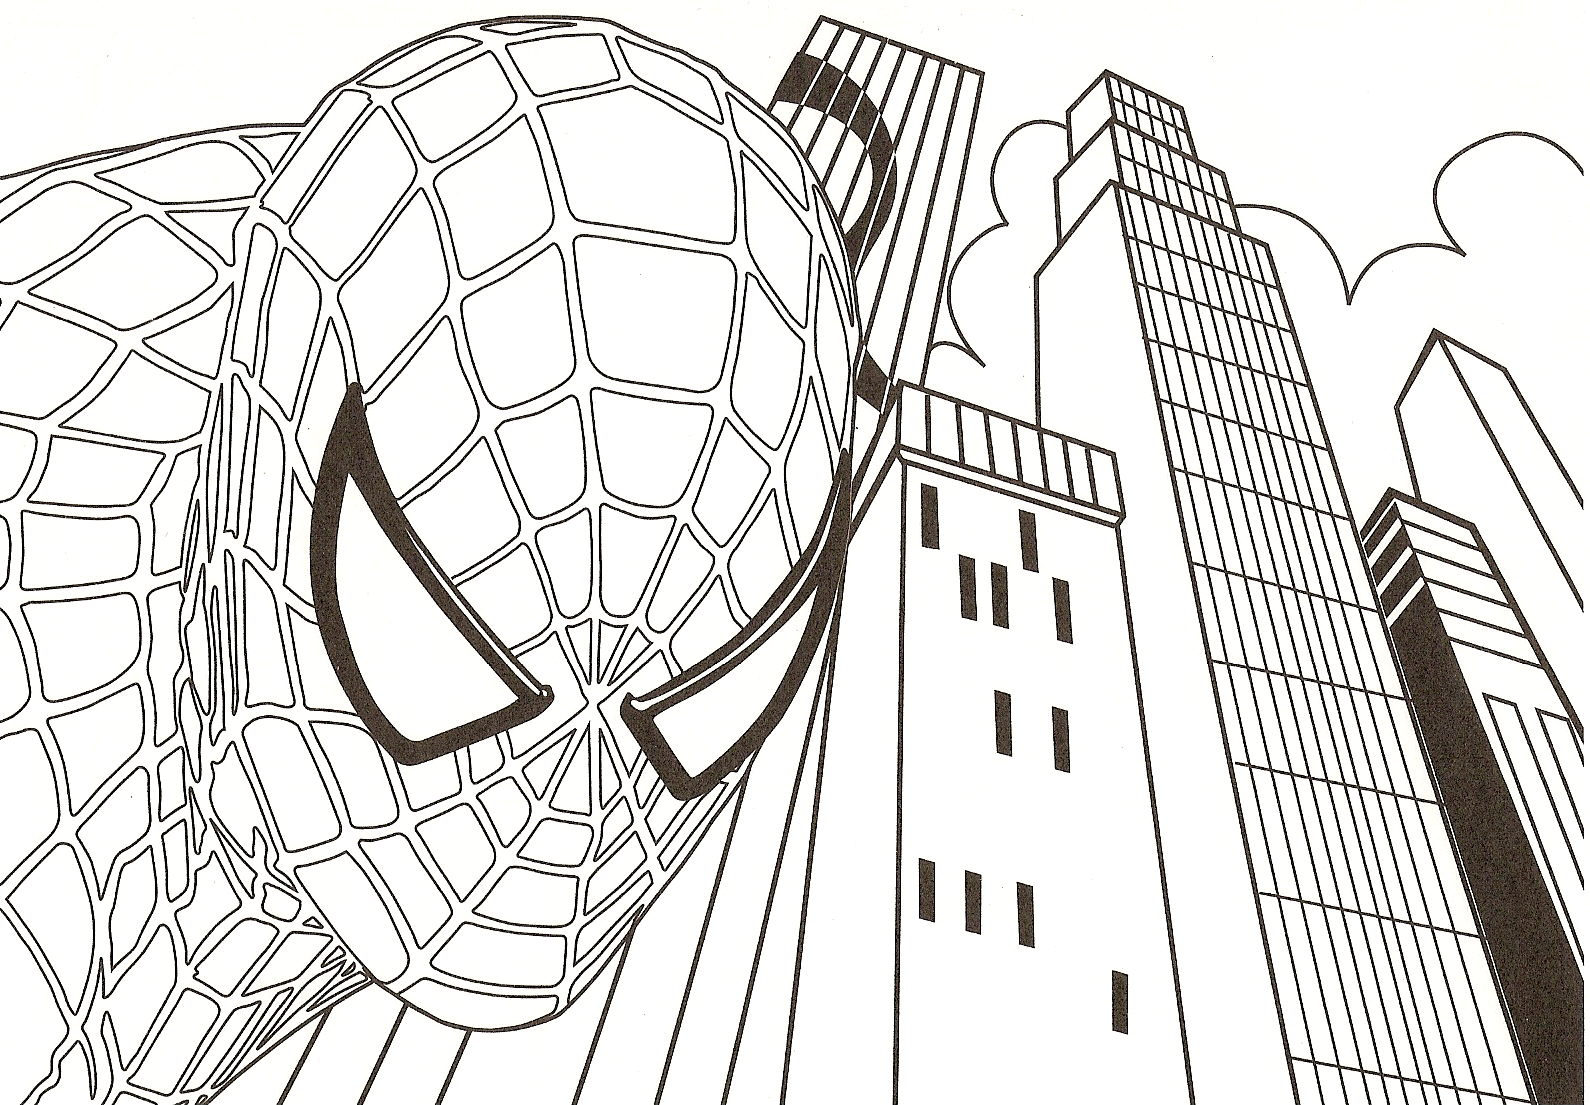 6 dessins de coloriage superman et spiderman coloriage - Dessin a imprimer de spiderman ...